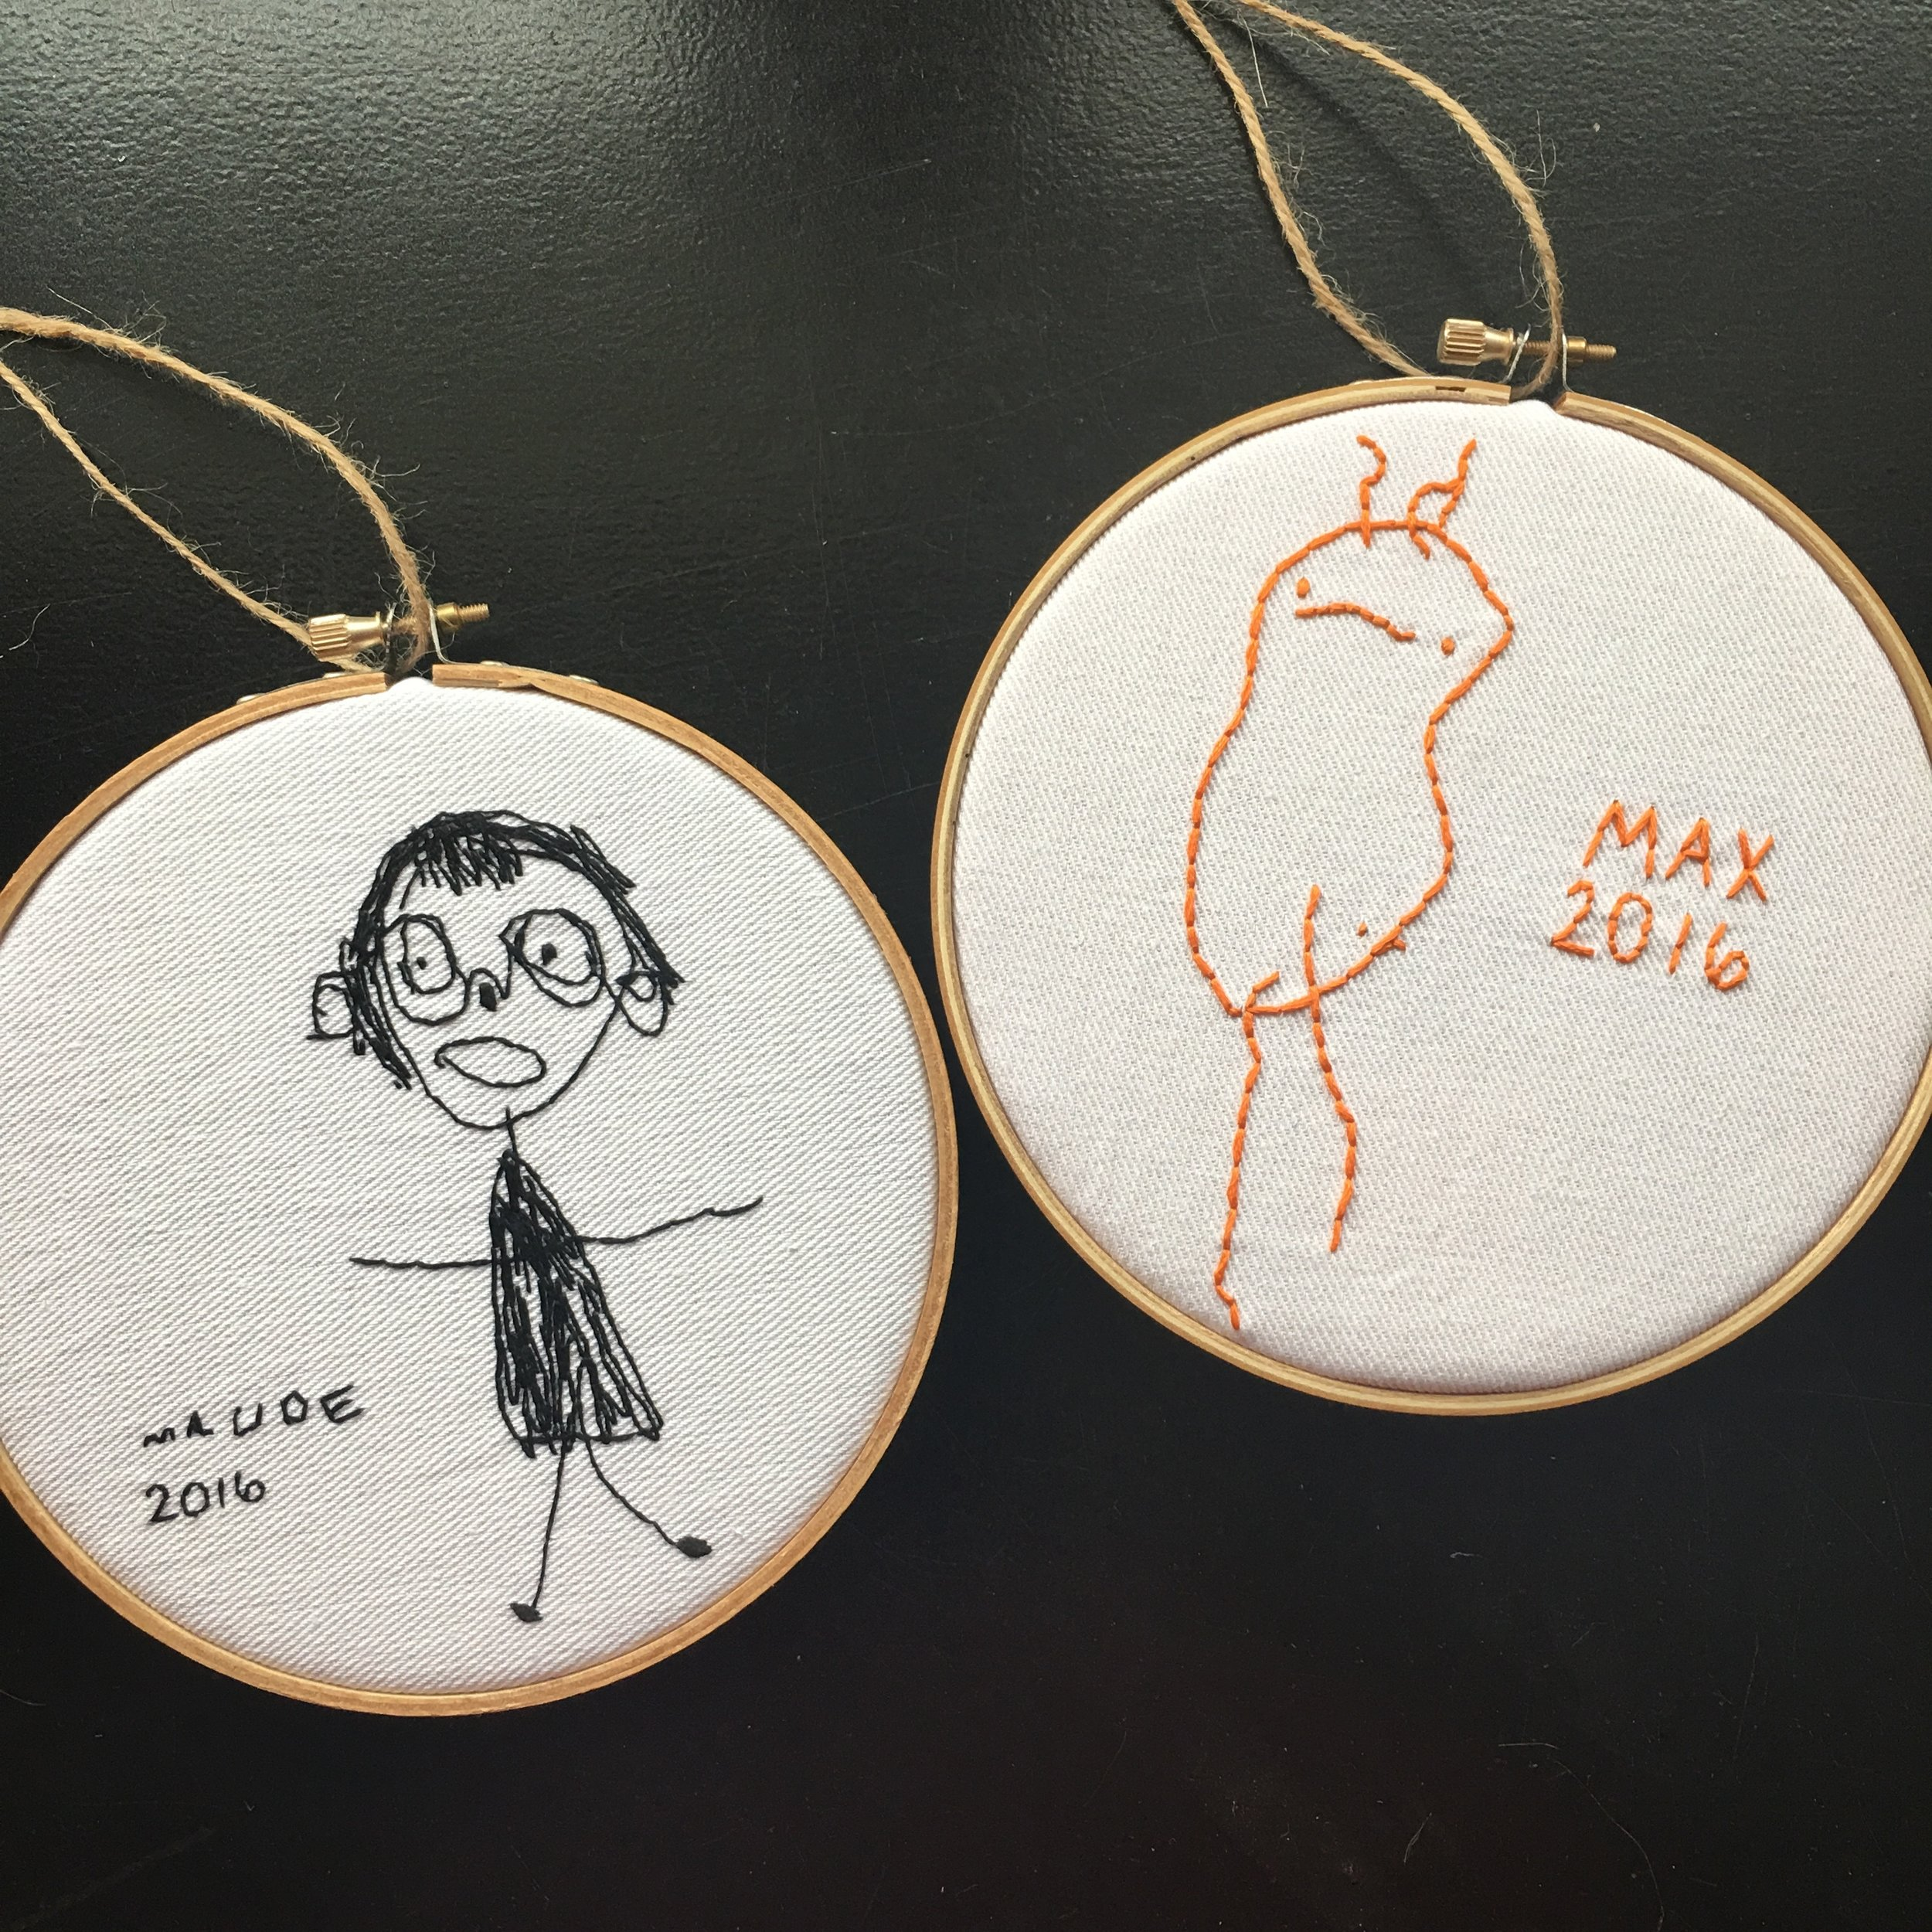 People order my embroidered children's art pieces because they are looking for unique and meaningful gifts, often for grandparents of the little artists.